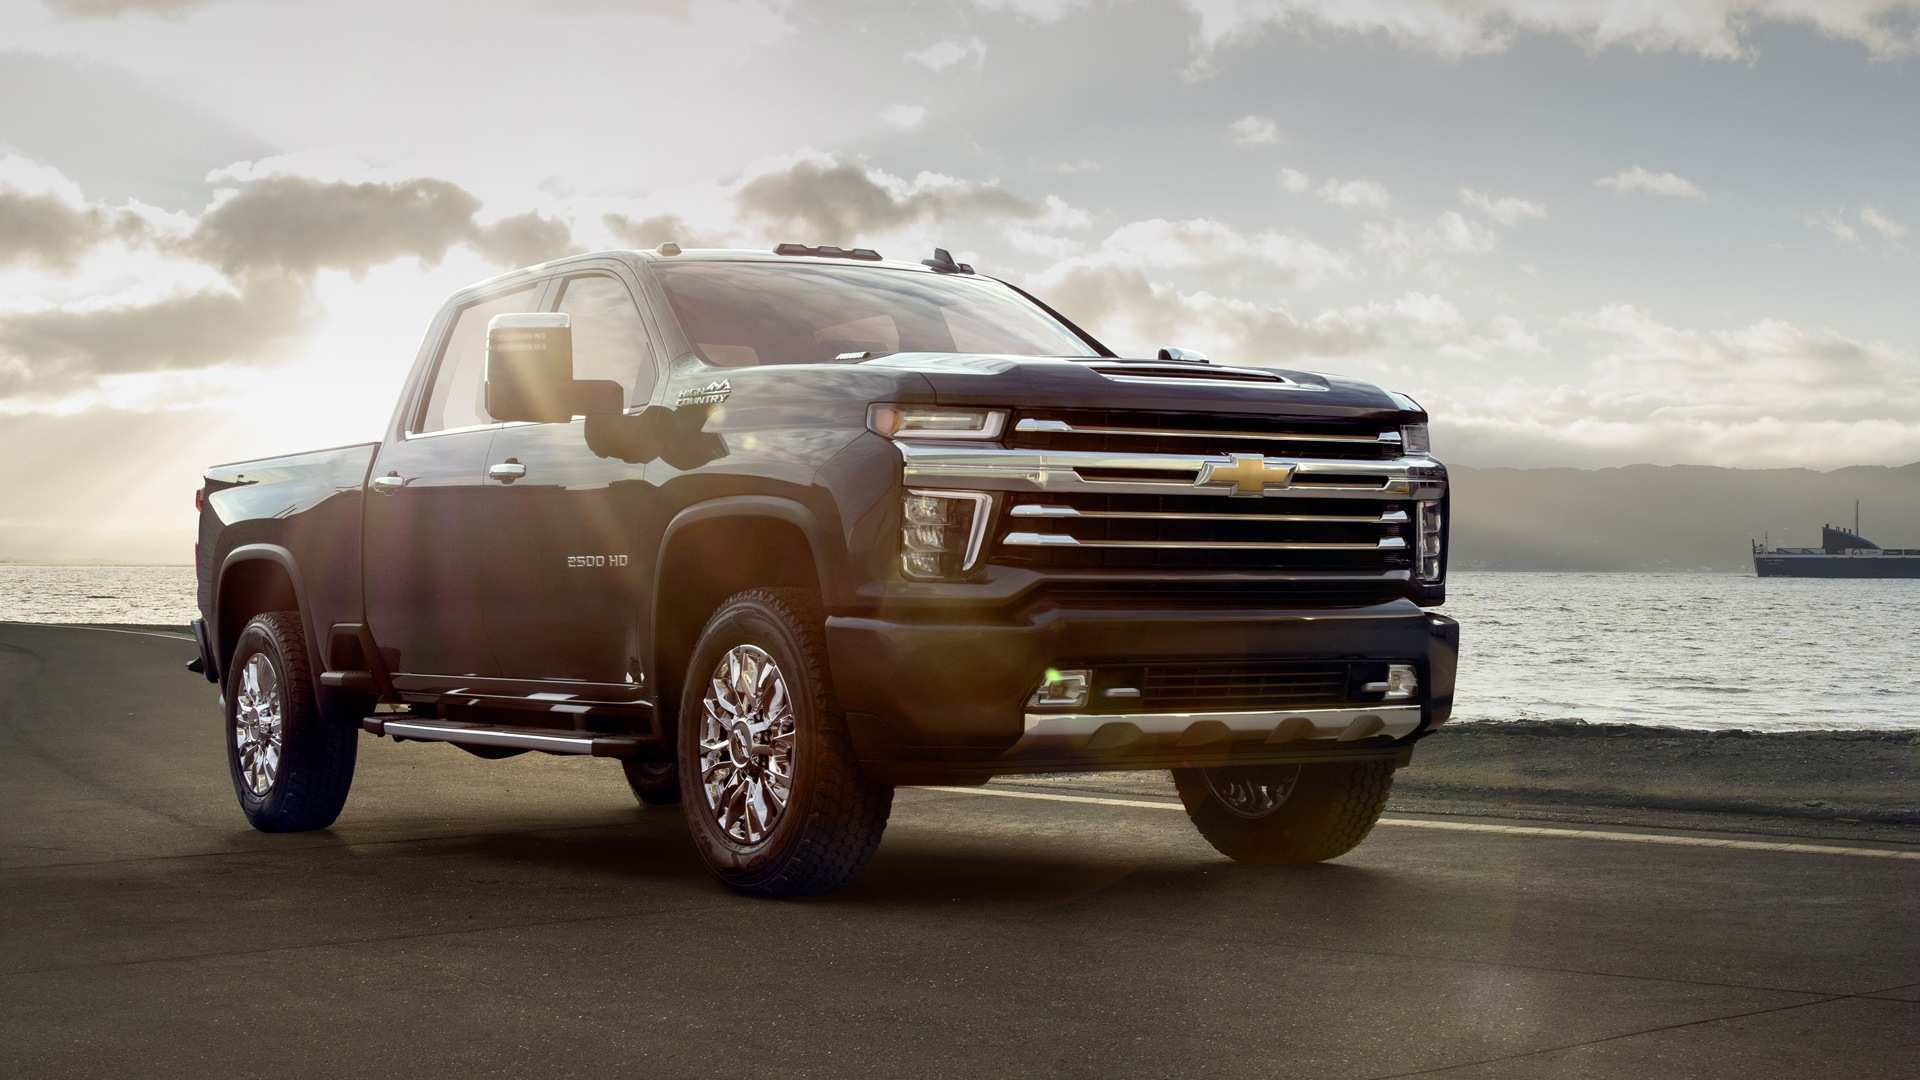 89 Great 2020 Chevy Silverado Hd Concept for 2020 Chevy Silverado Hd